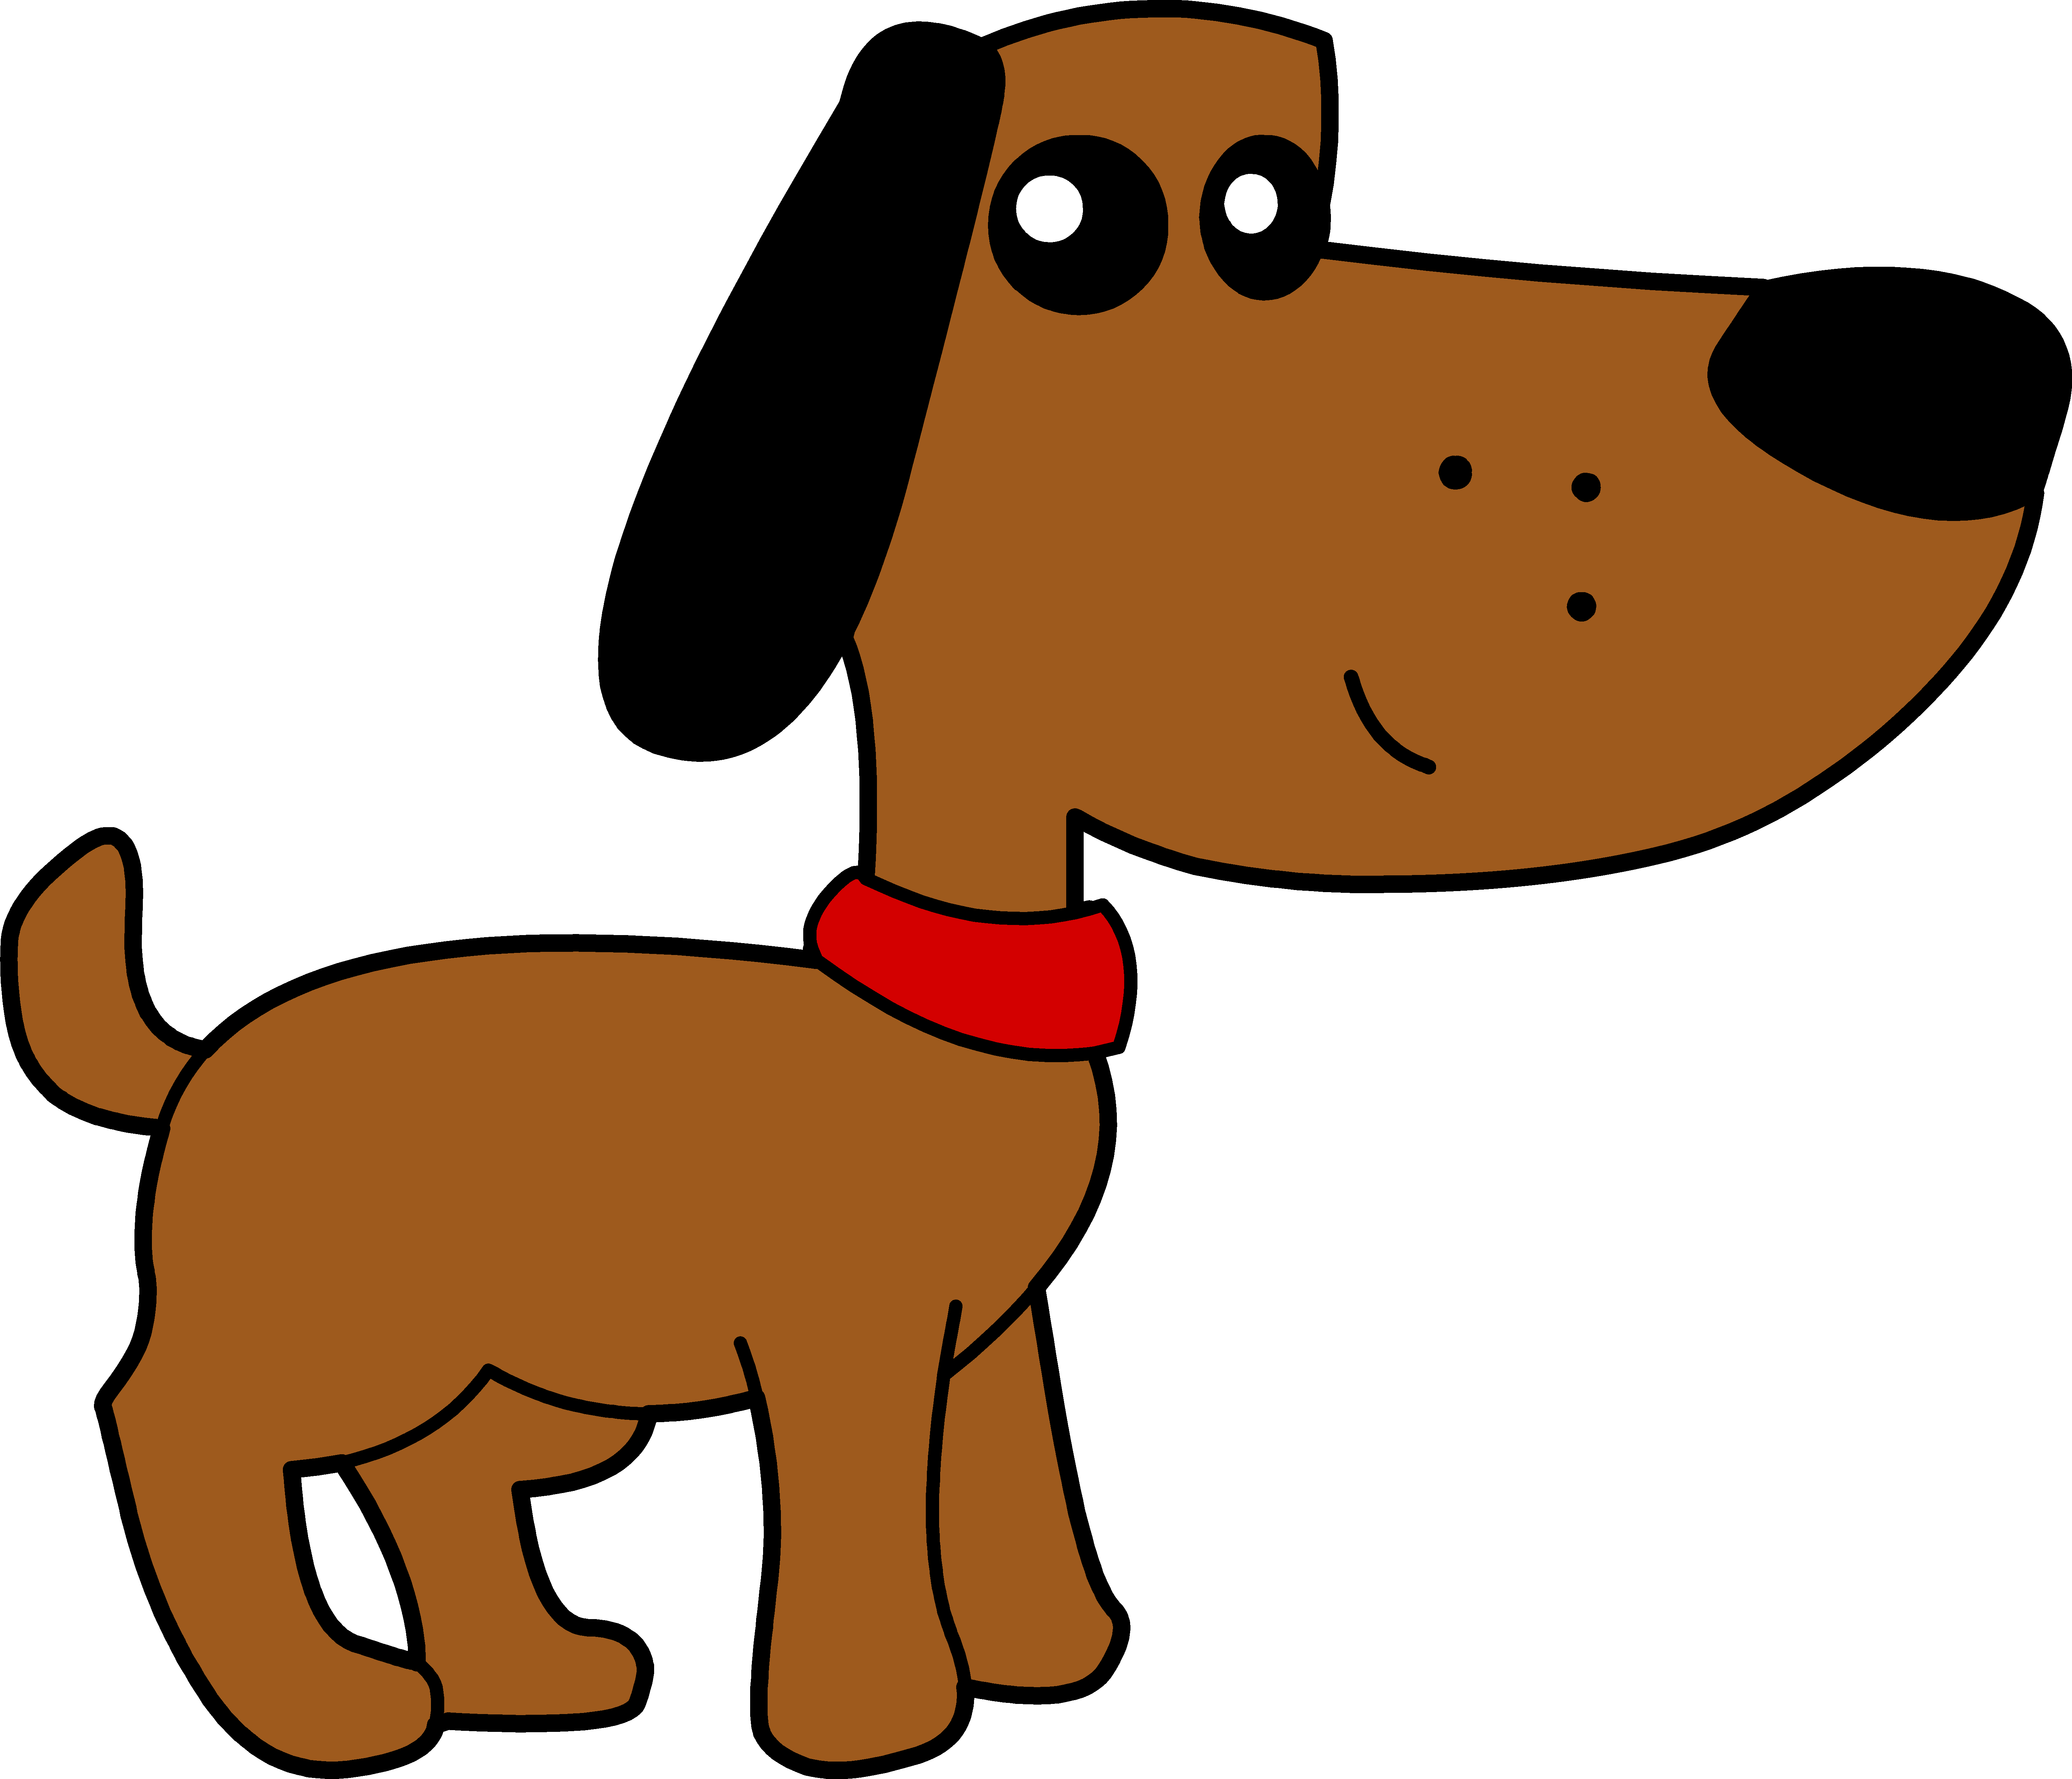 Dog cliparthot of . Dogs clipart ball